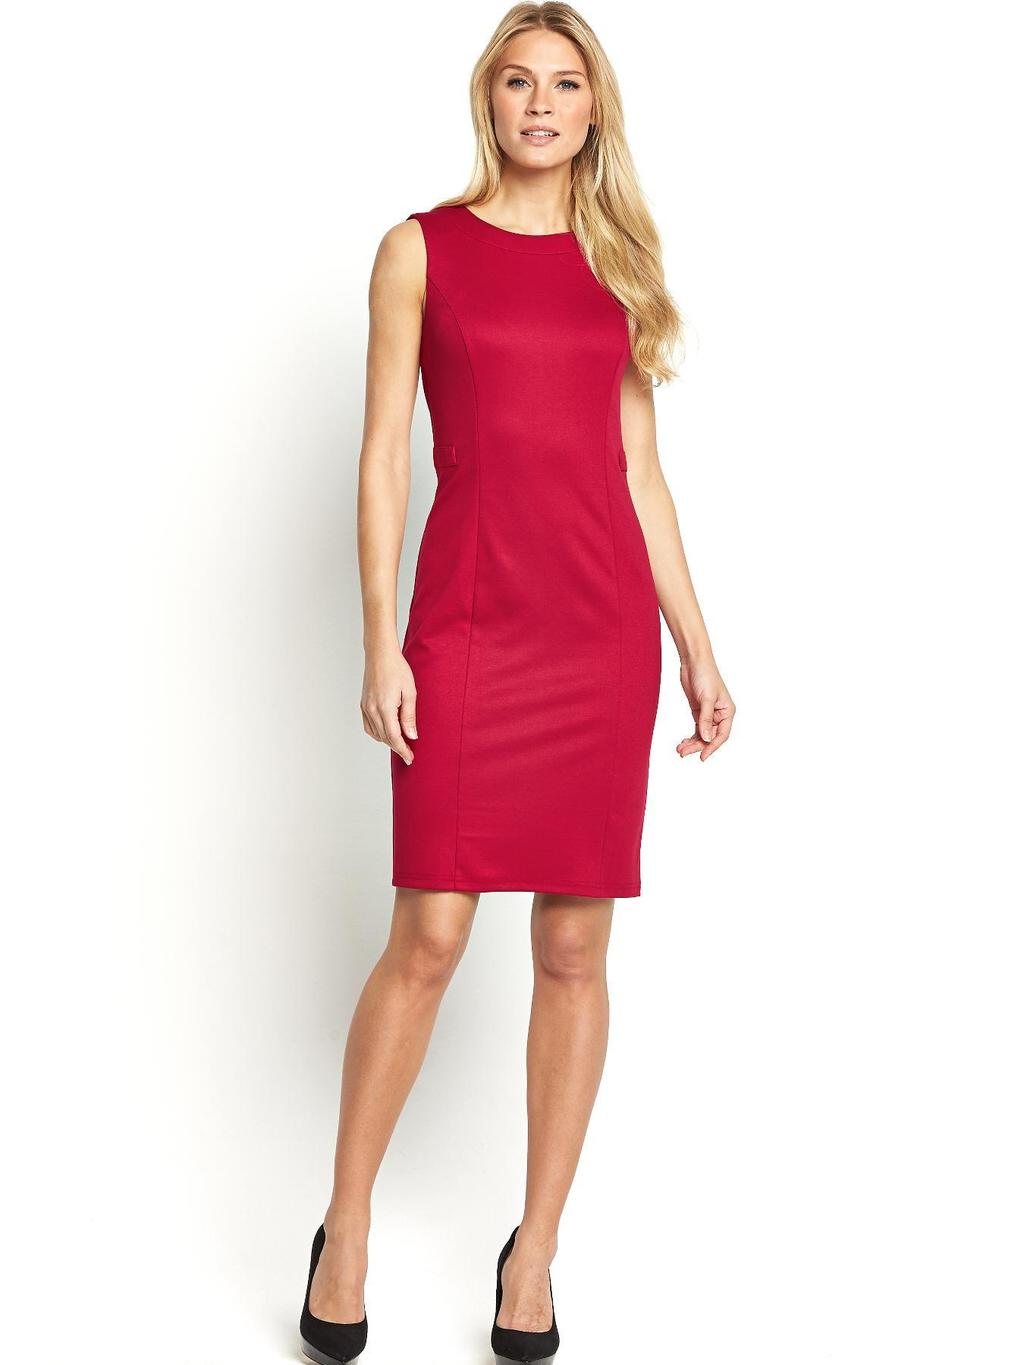 Ponte Workwear Dress, Black - style: shift; fit: tailored/fitted; pattern: plain; sleeve style: sleeveless; predominant colour: true red; occasions: evening, occasion; length: just above the knee; fibres: polyester/polyamide - stretch; neckline: crew; sleeve length: sleeveless; pattern type: fabric; texture group: other - light to midweight; season: a/w 2014